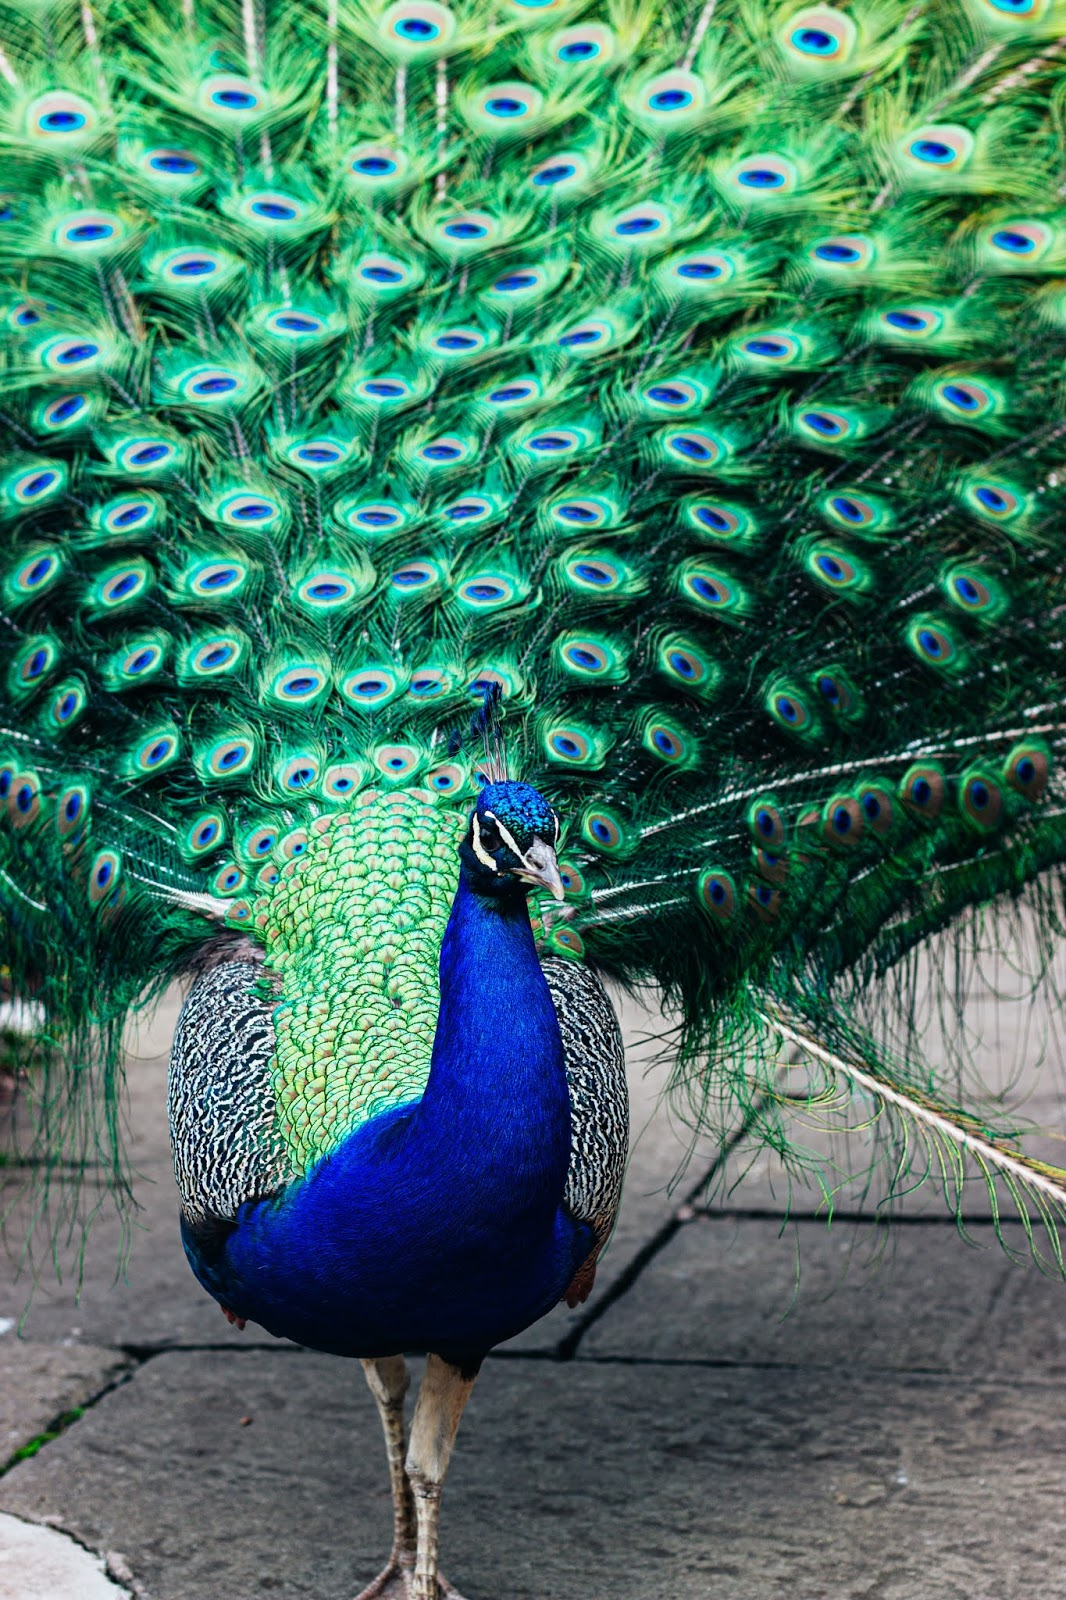 On of the very special and beautiful birds Peacock